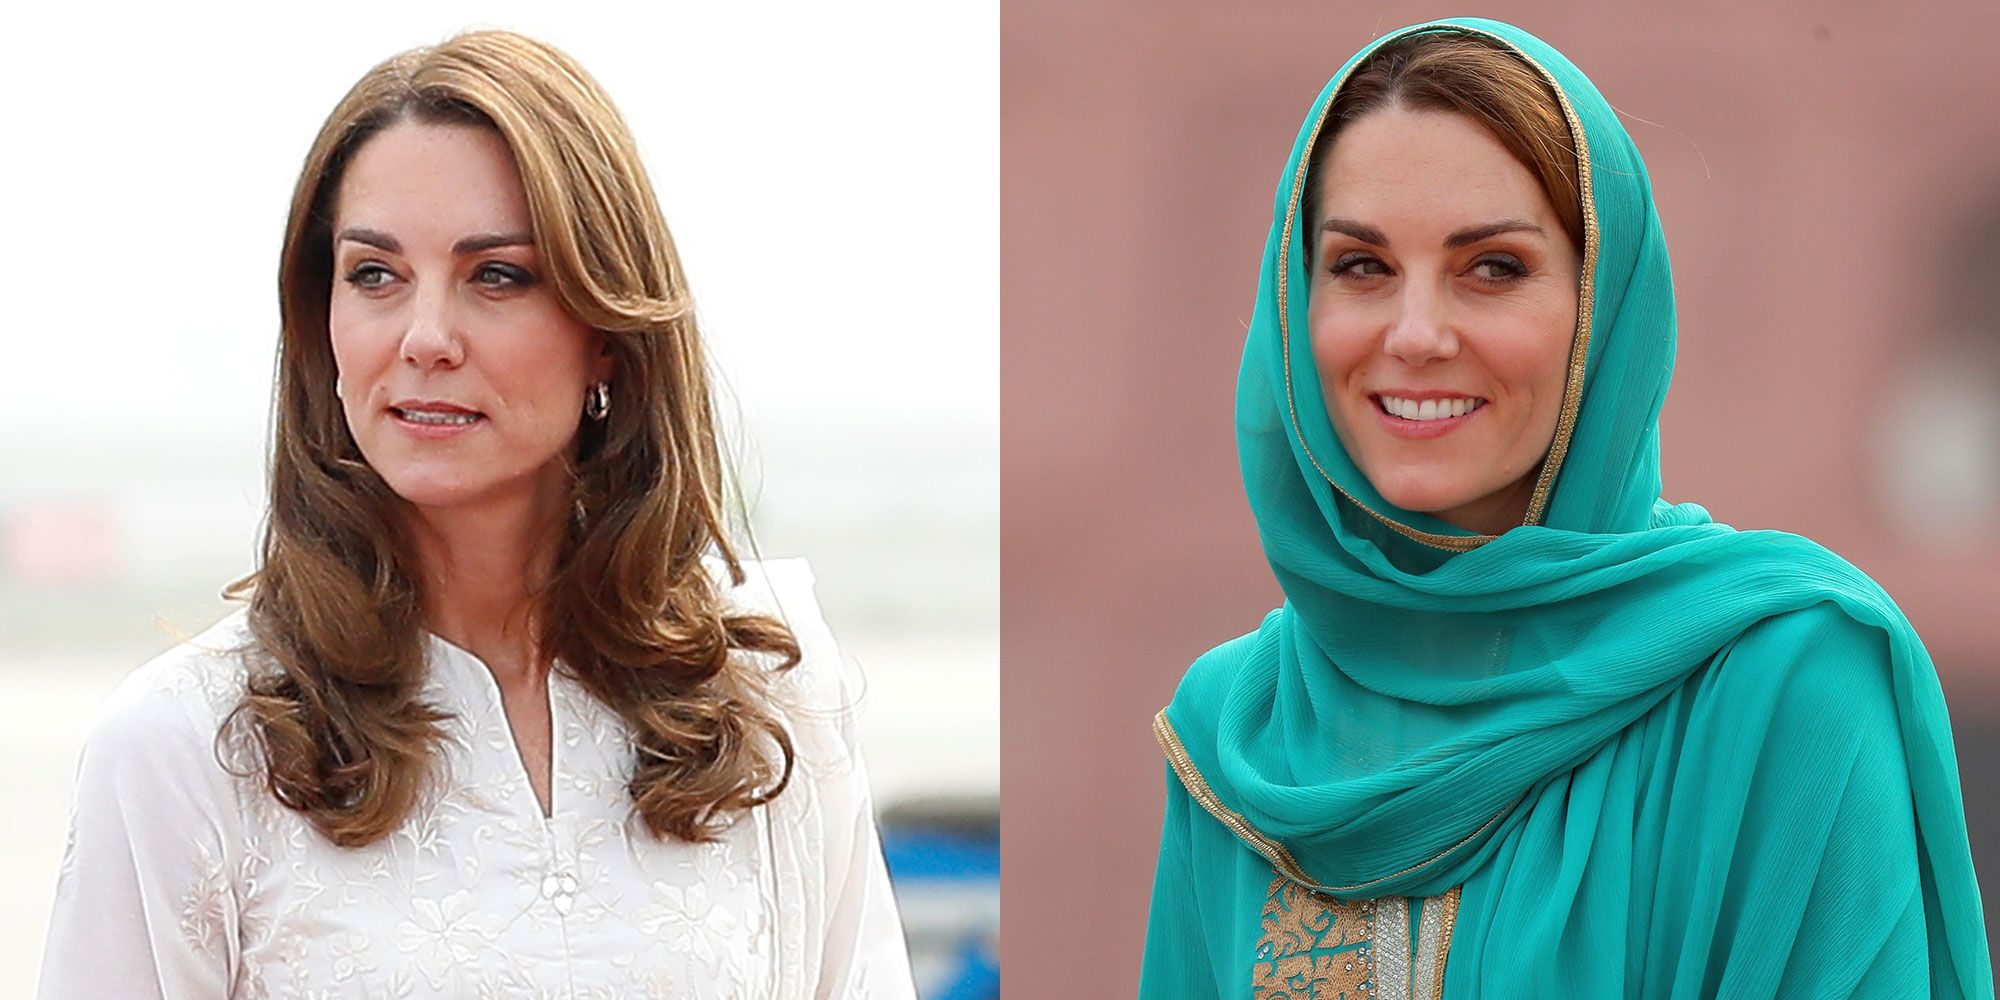 Kate Middleton's White and Green Outfits In Pakistan Are Two of Her Best Yet